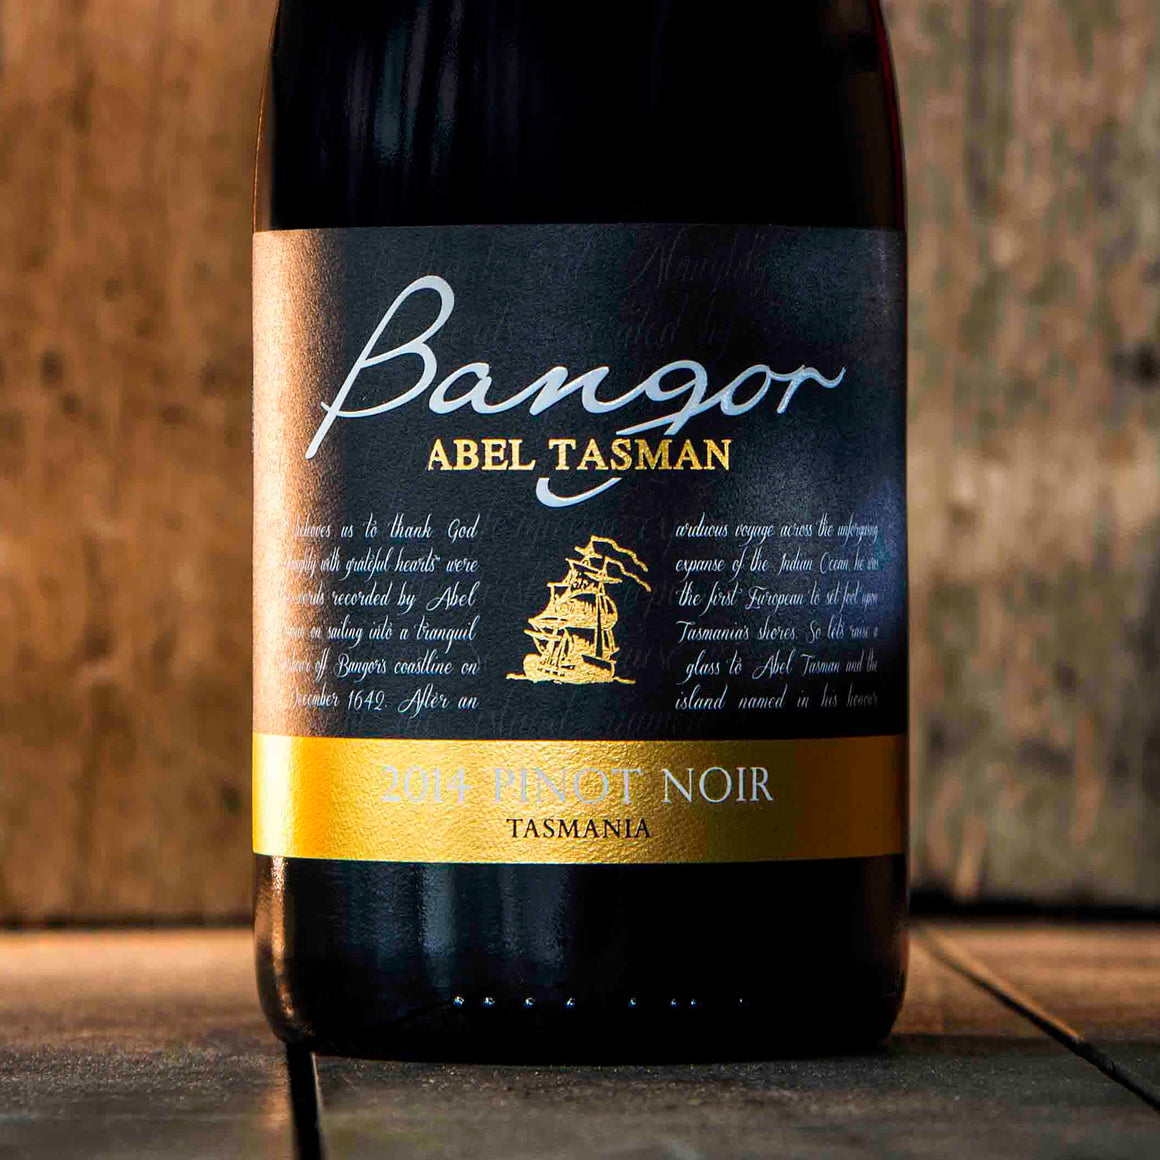 Bangor Pinot Dinner - enjoy our range of Pinot wines matched with a 4 couse meal